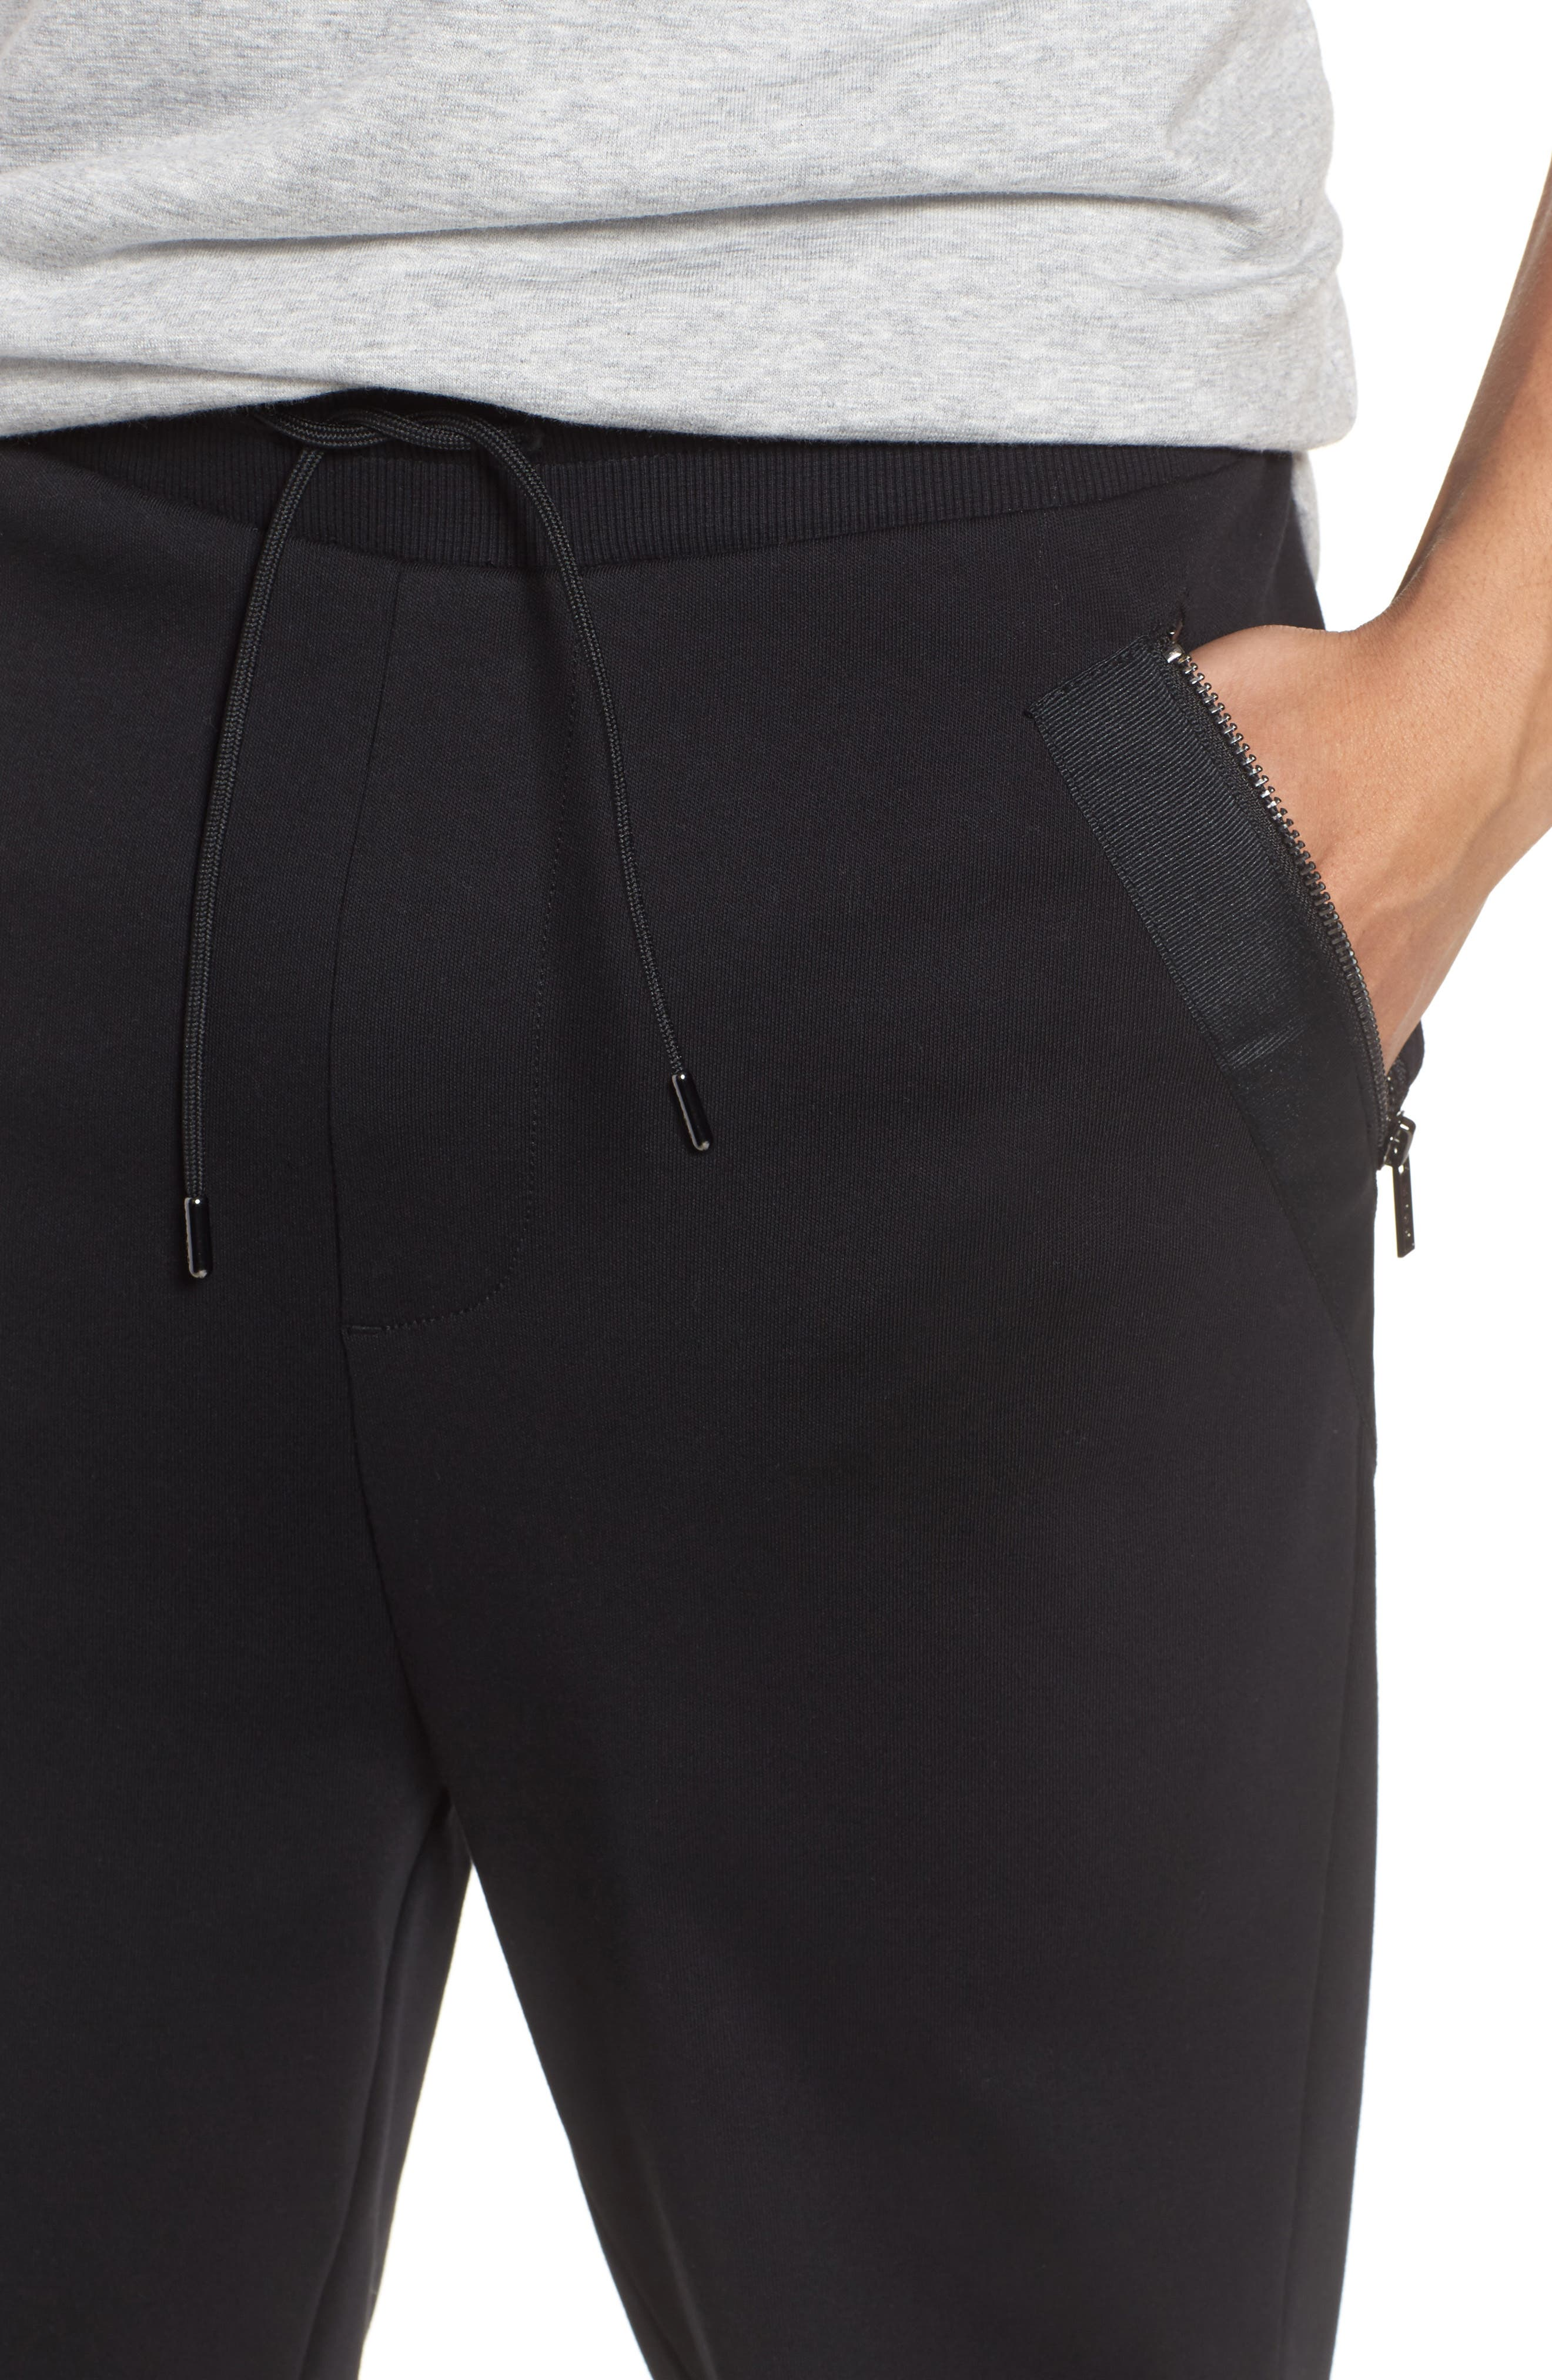 Daring Relaxed Fit Sweatpants,                             Alternate thumbnail 4, color,                             001